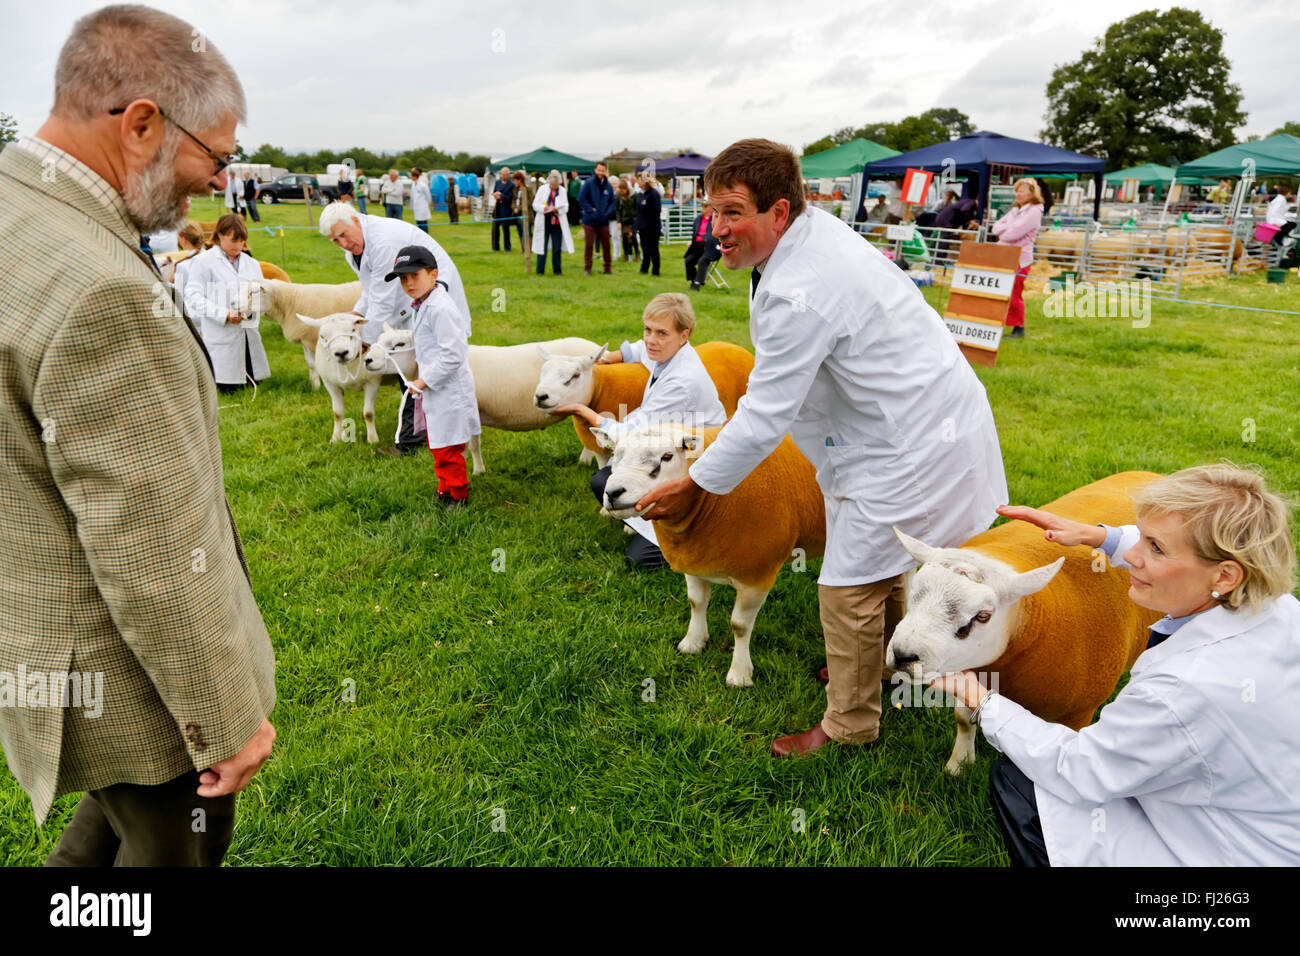 Texel & Poll Dorset Sheep being judged at the 2015 Gillingham & Shaftesbury Agricultural Show, Dorset, United - Stock Image